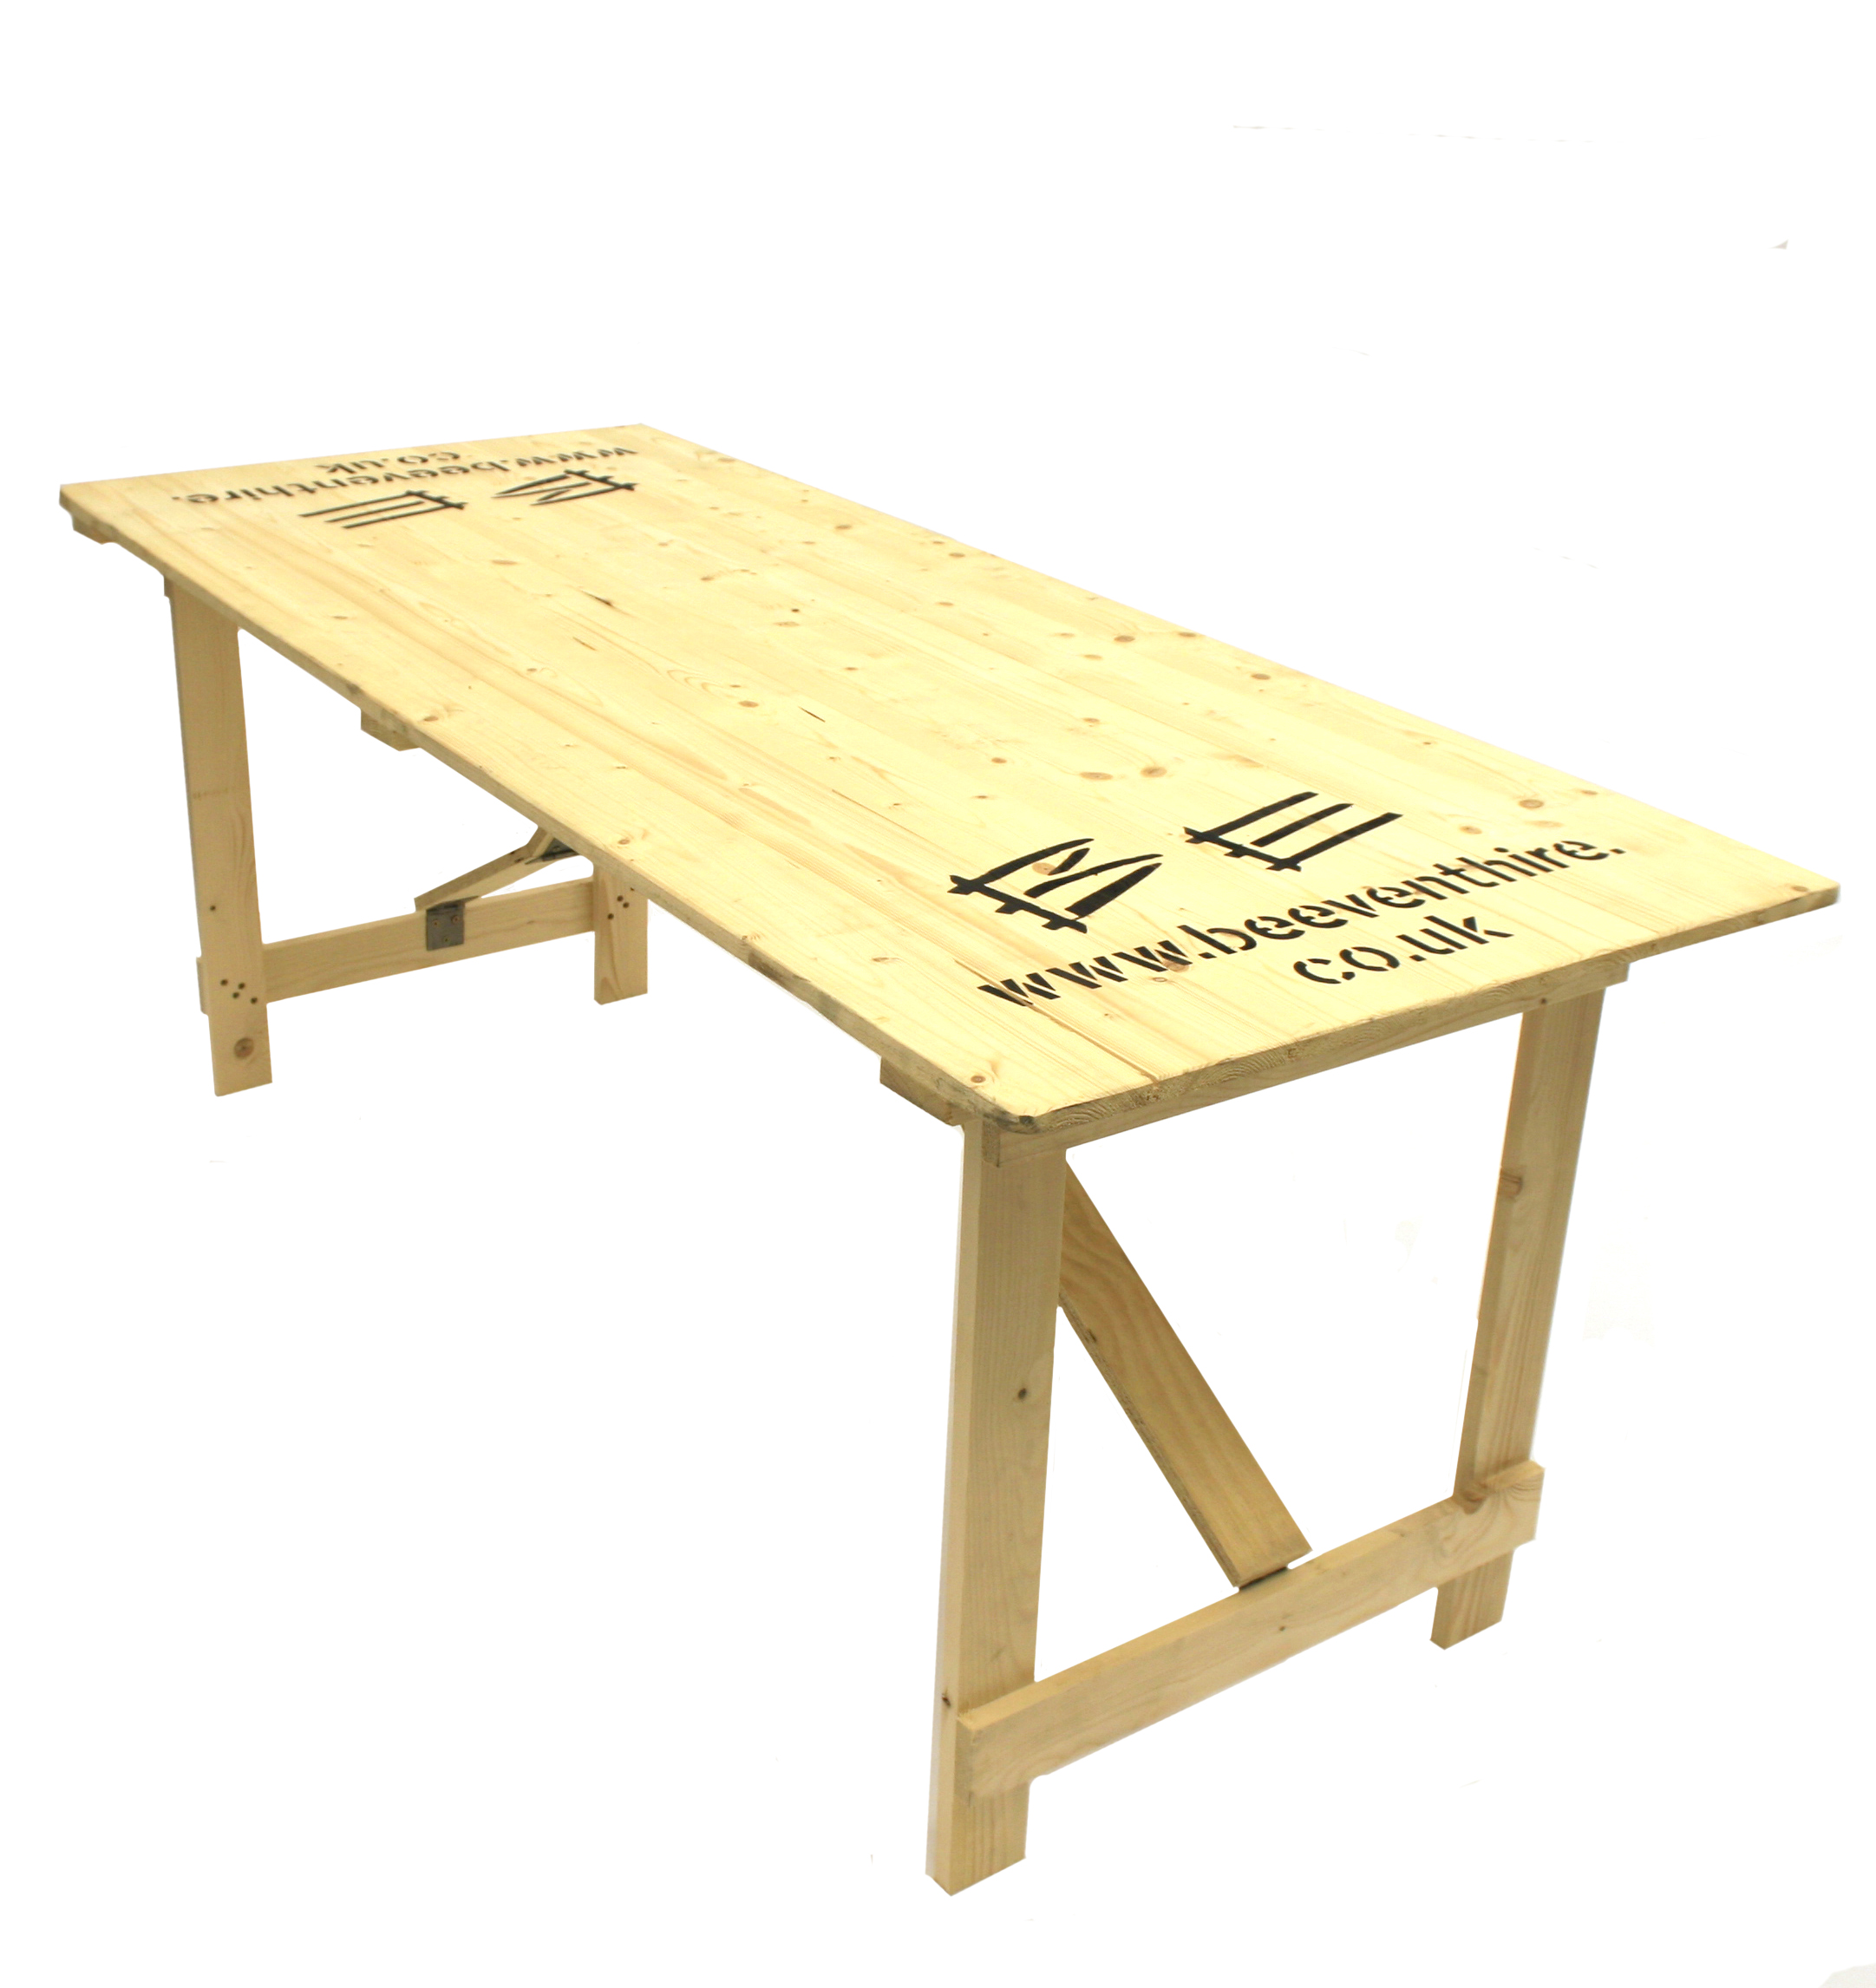 6x 26 trestle table 2500 in stock